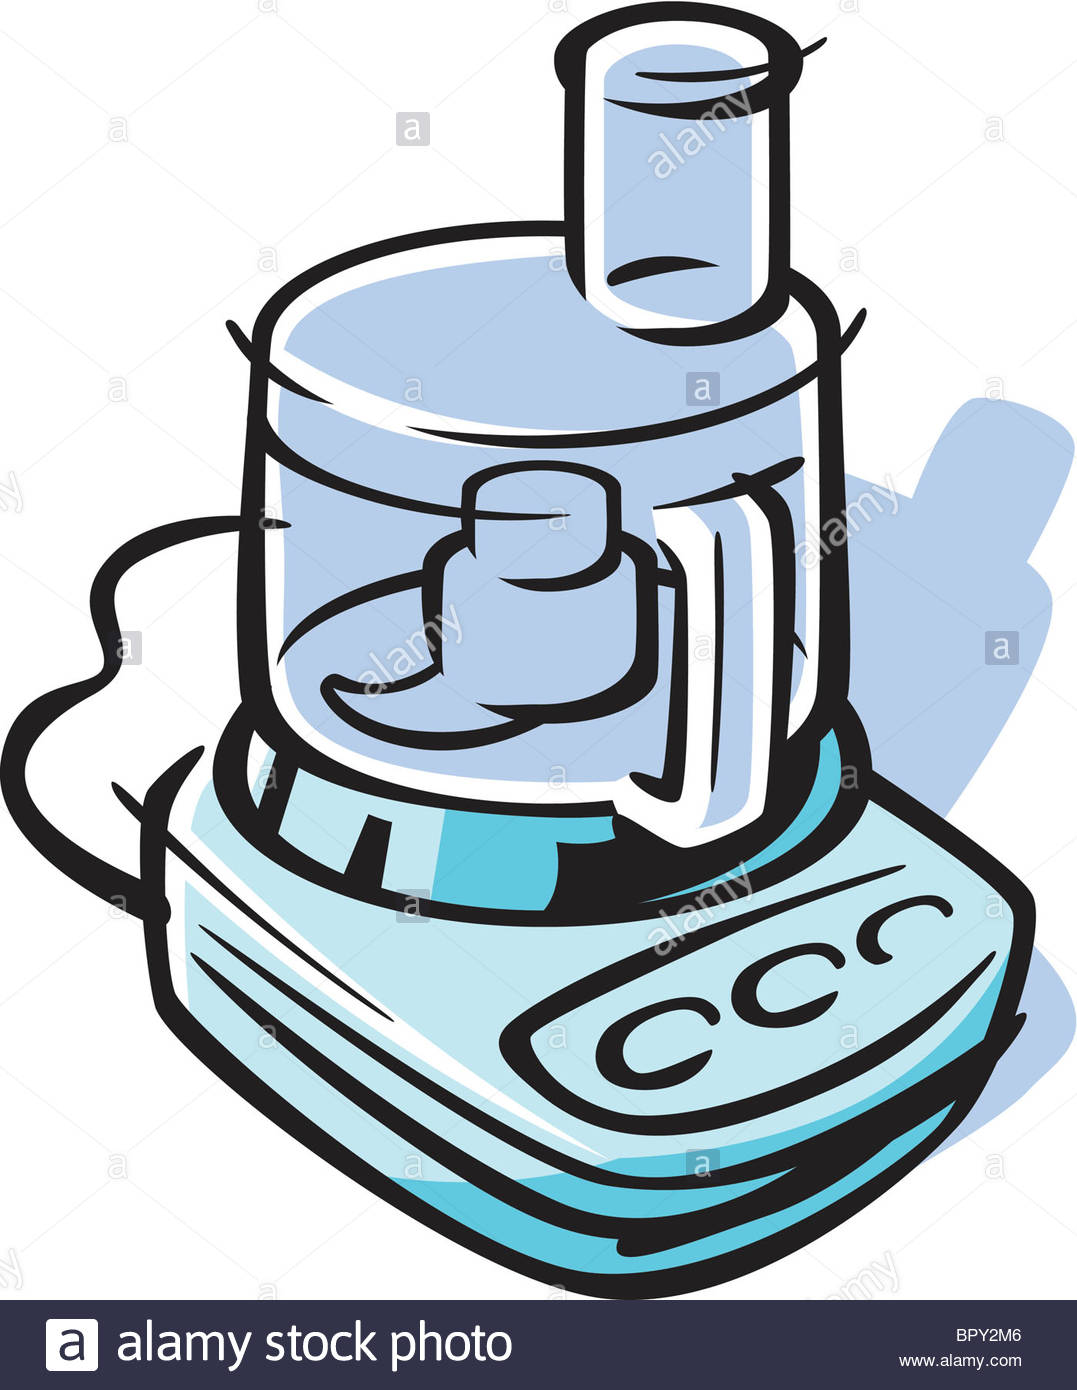 Food Processor Drawing at GetDrawings.com | Free for personal use ...